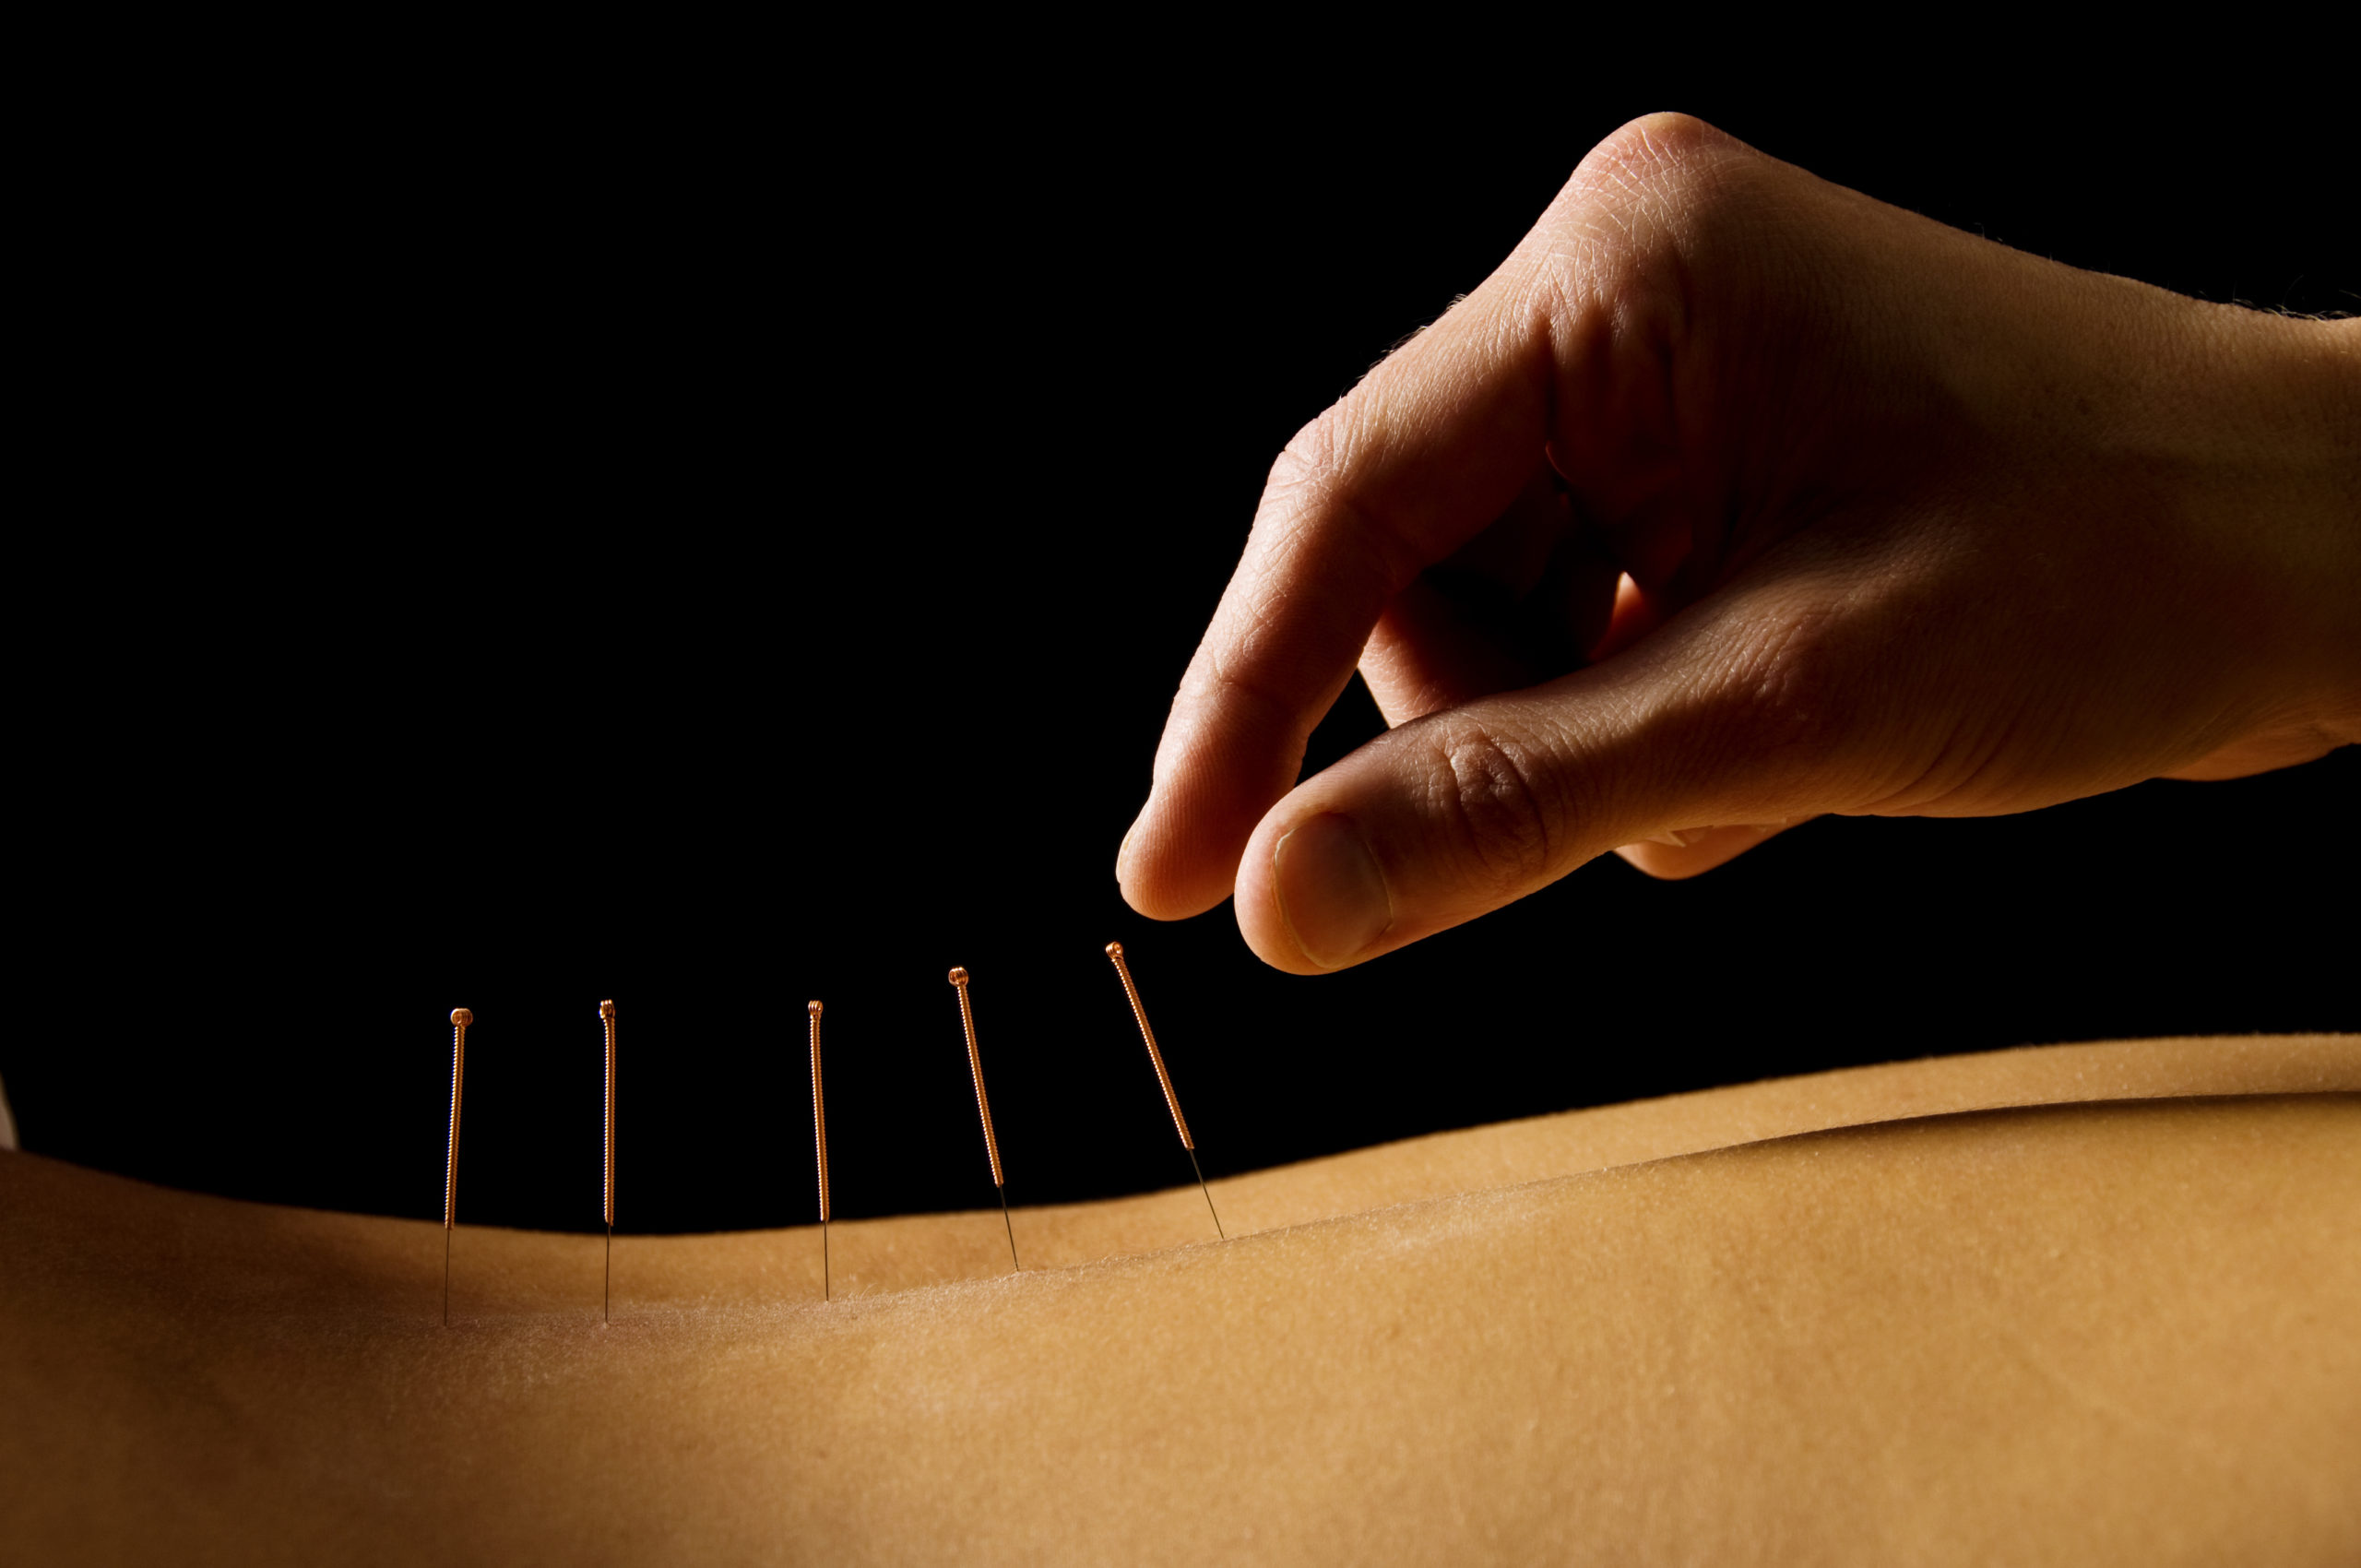 Acupuncture sensitive